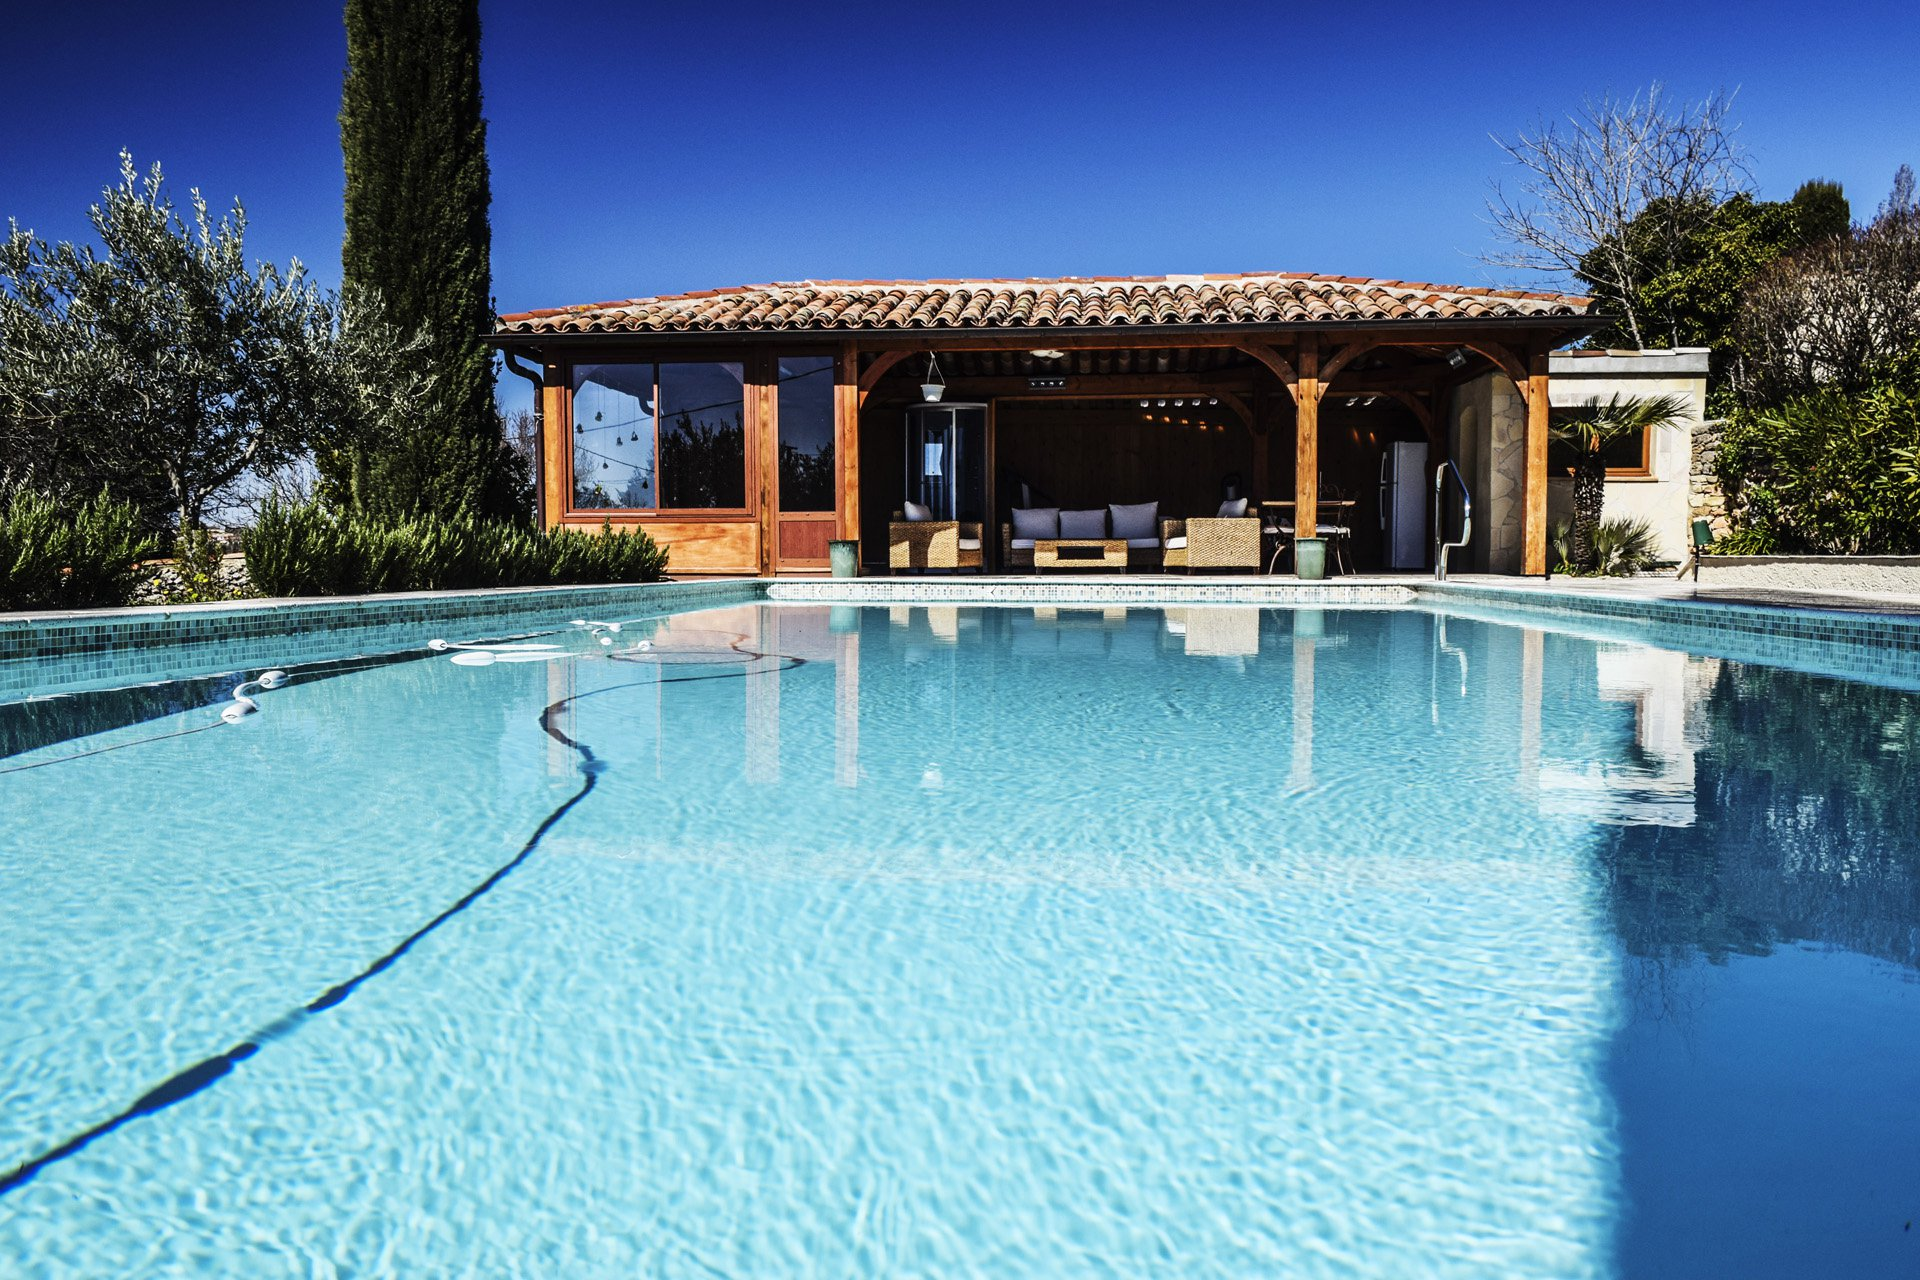 the pool with jacuzzi house 19th century mansion with pool renovated interior elevator, Aups, Var, Verdon, Provence